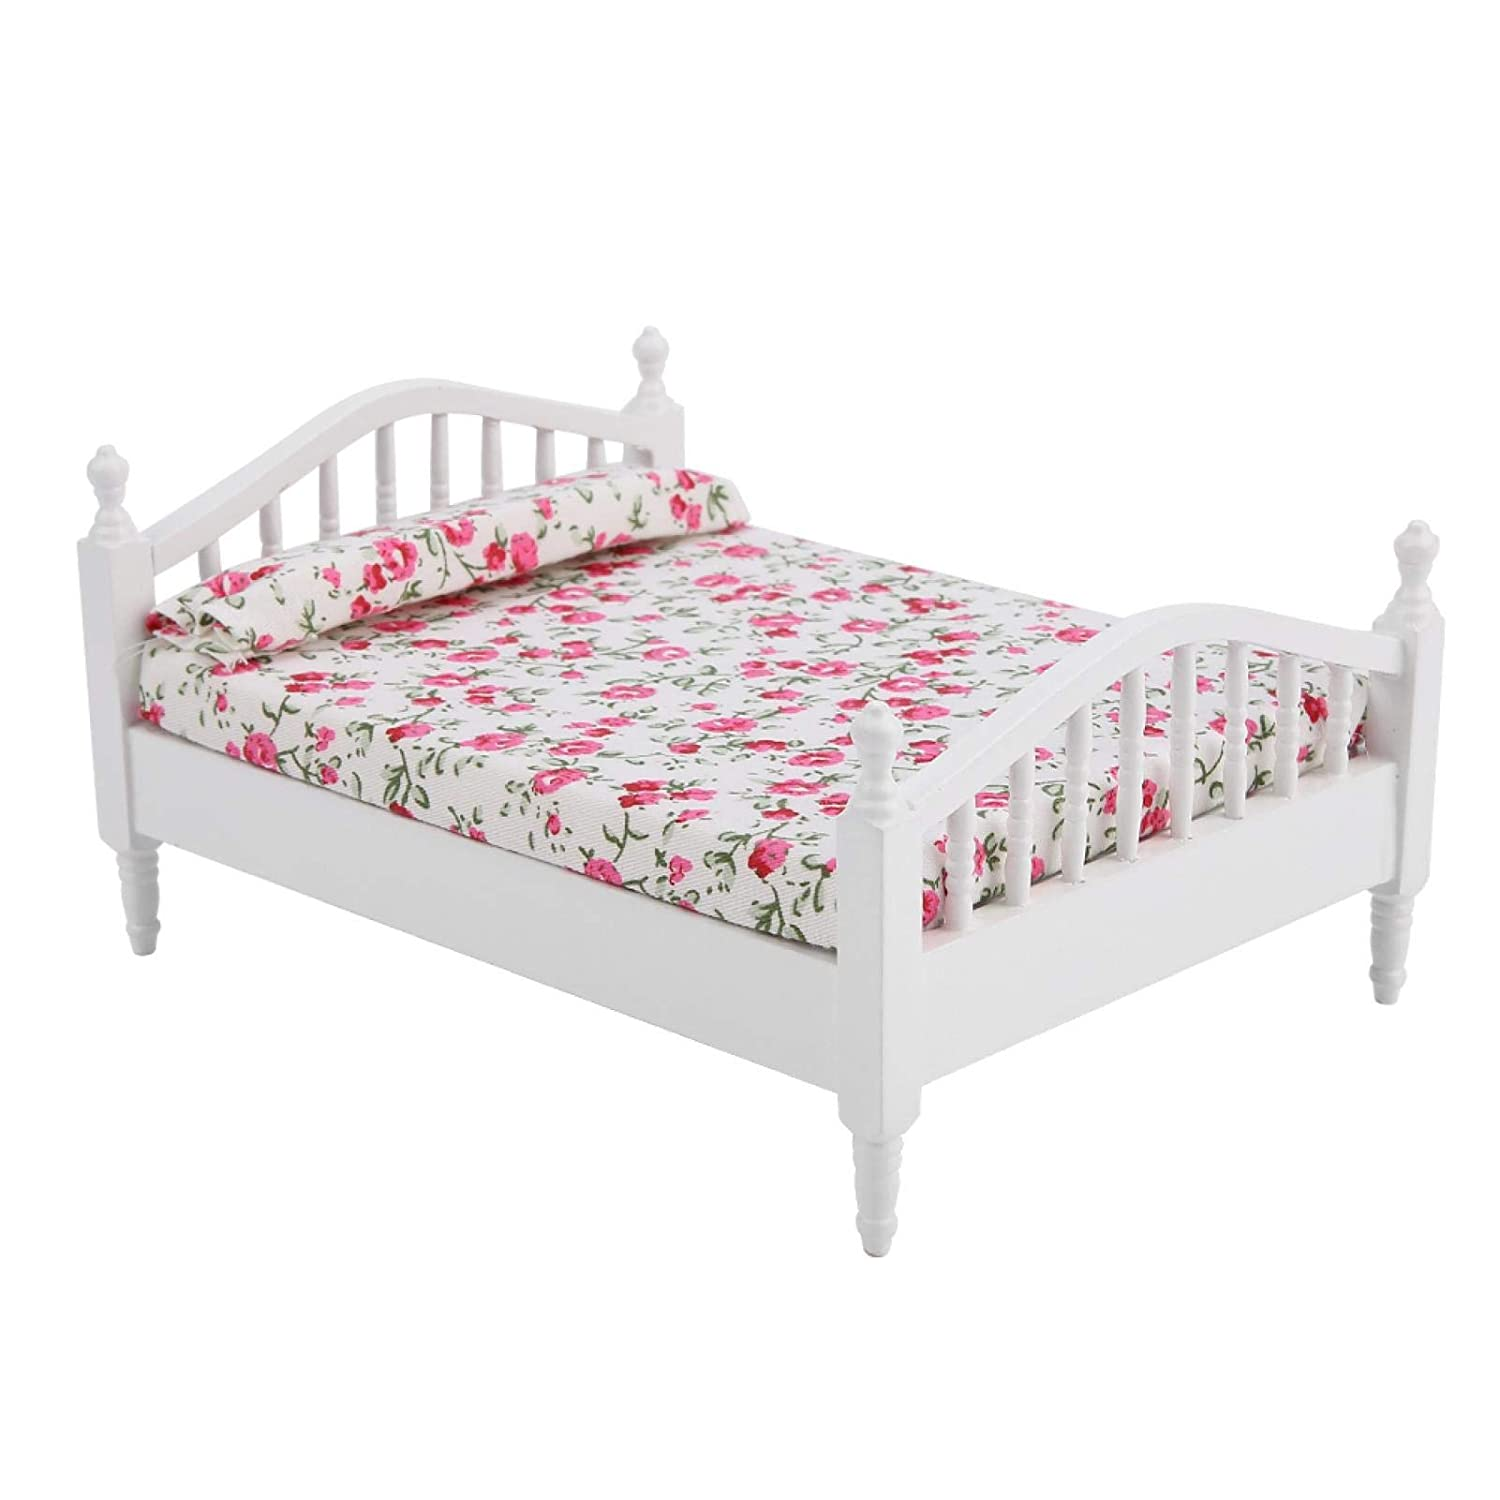 Dollhouse Bed,Dollhouse Accessories, Flower Pattern Mini Furniture Double Bed for 1/12 Scale Doll,Wood + Cloth,for 1/12 Scale Dollhouse or Doll